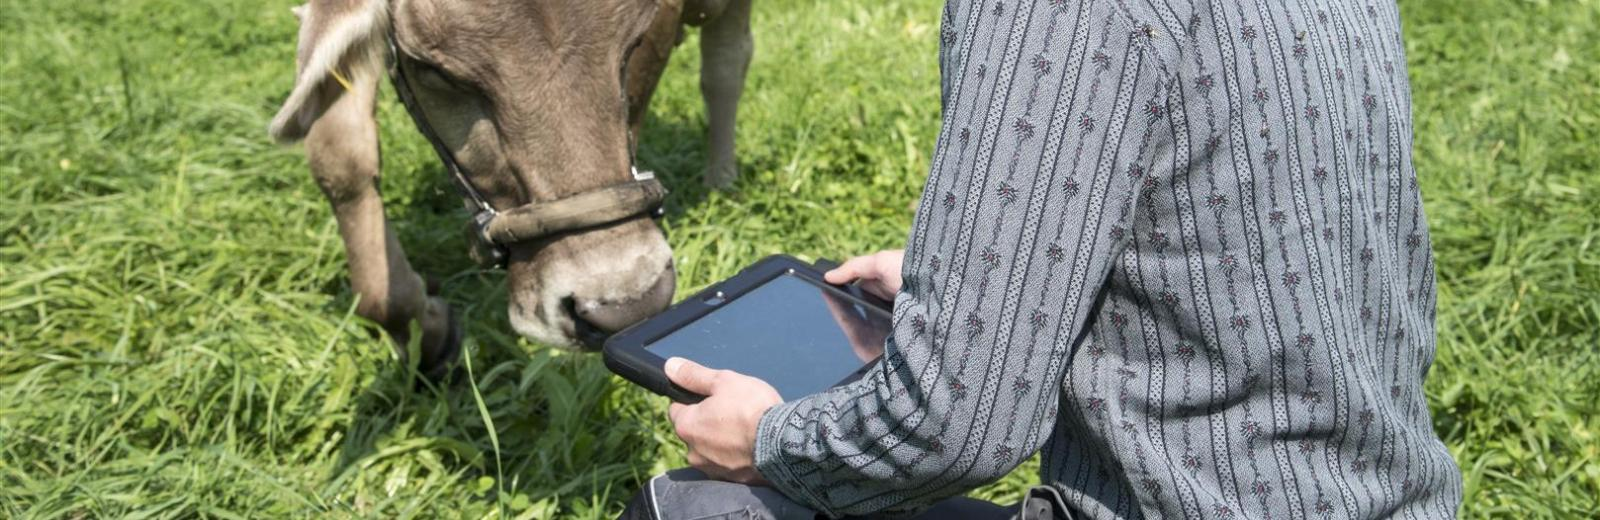 Agriculture 4 0 - the Swiss Smart-Farming Revolution